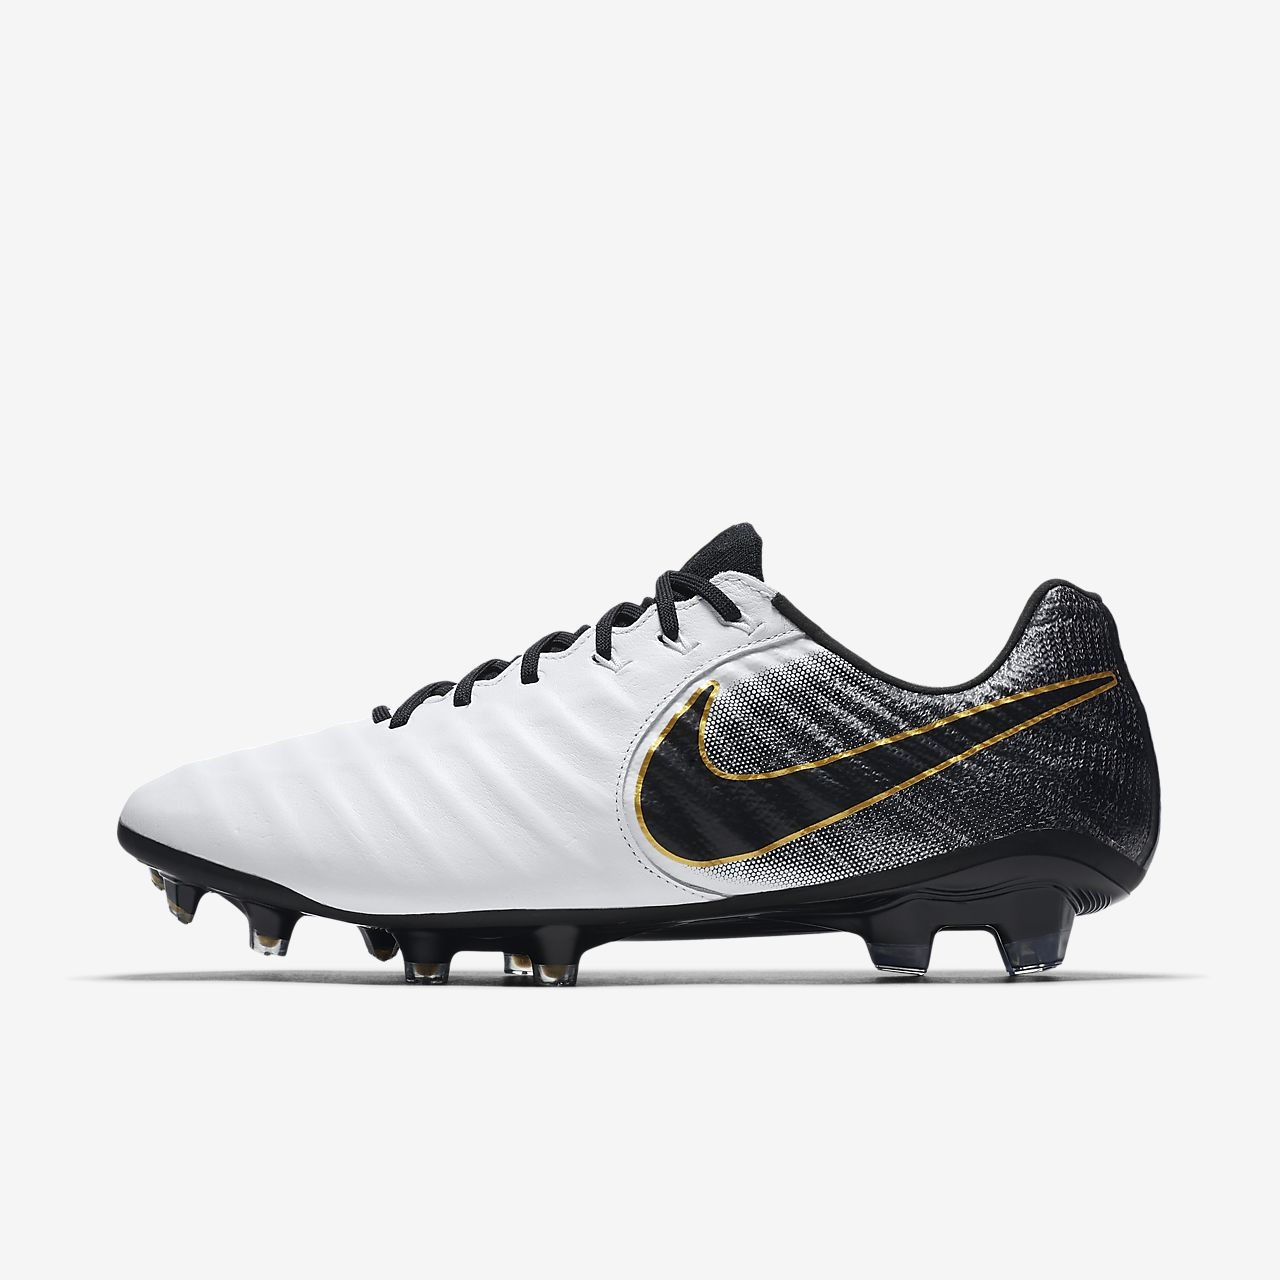 Nike Legend 7 Elite Game Over FG Firm-Ground Football Boot